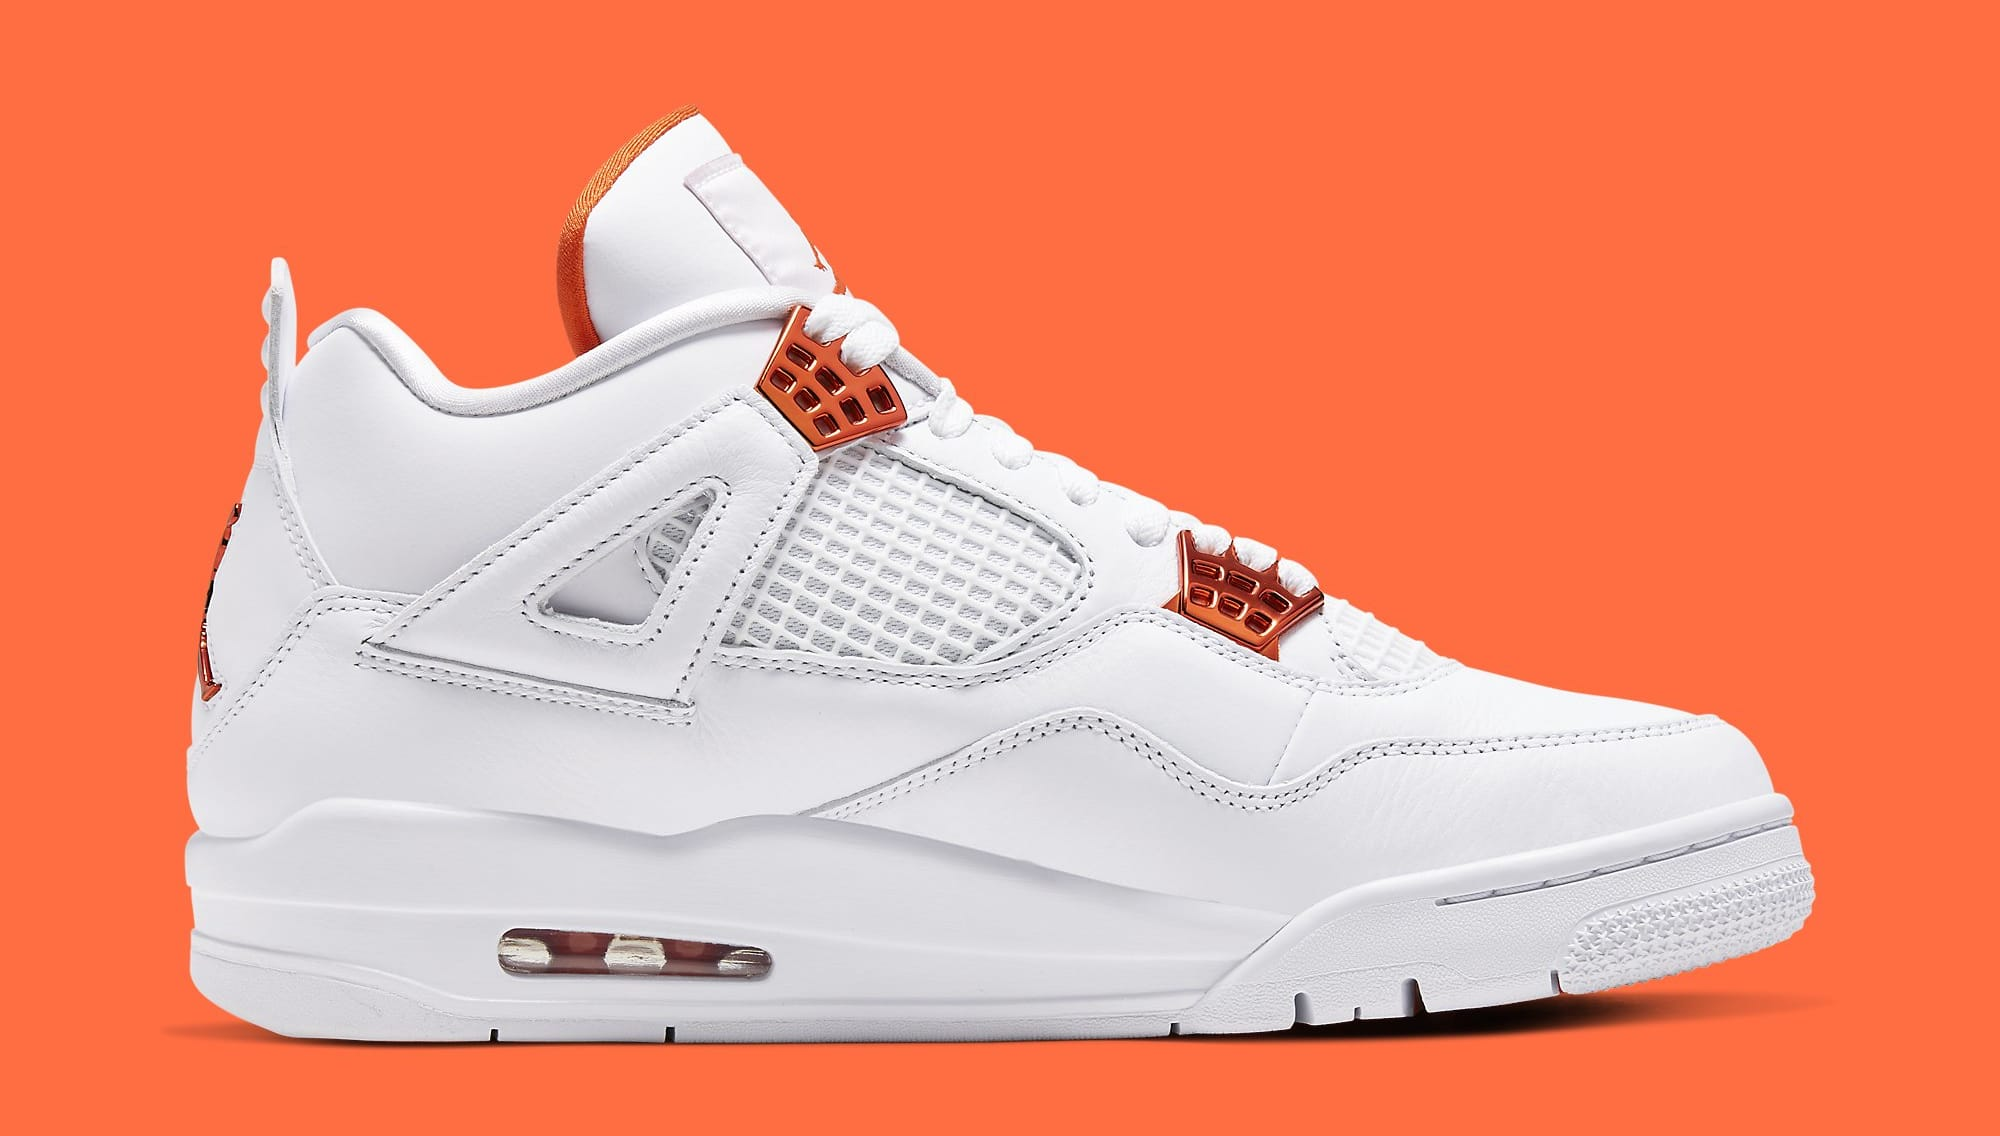 Air Jordan 4 Metallic Orange Release Date CT8527-118 Medial